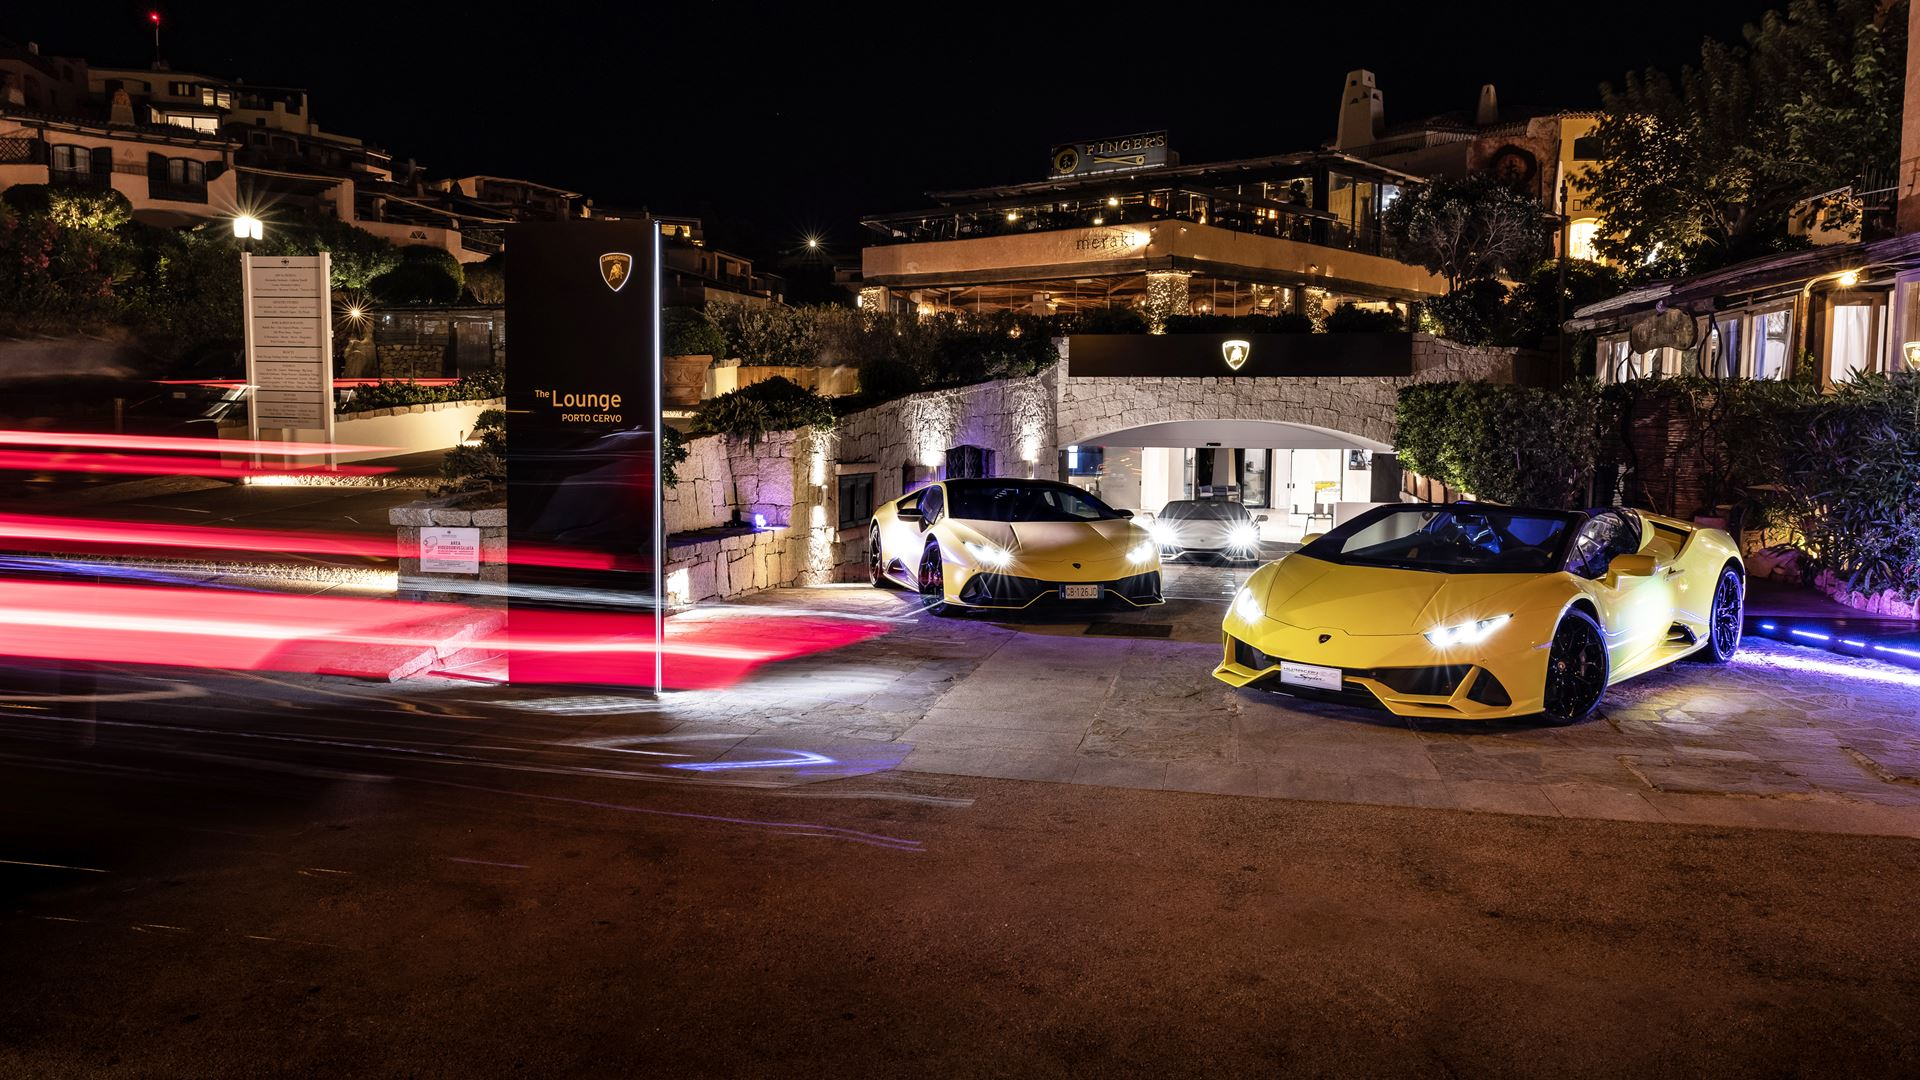 Lamborghini Lounge in Porto Cervo: exclusivity, lifestyle and product innovations, until September - Image 5